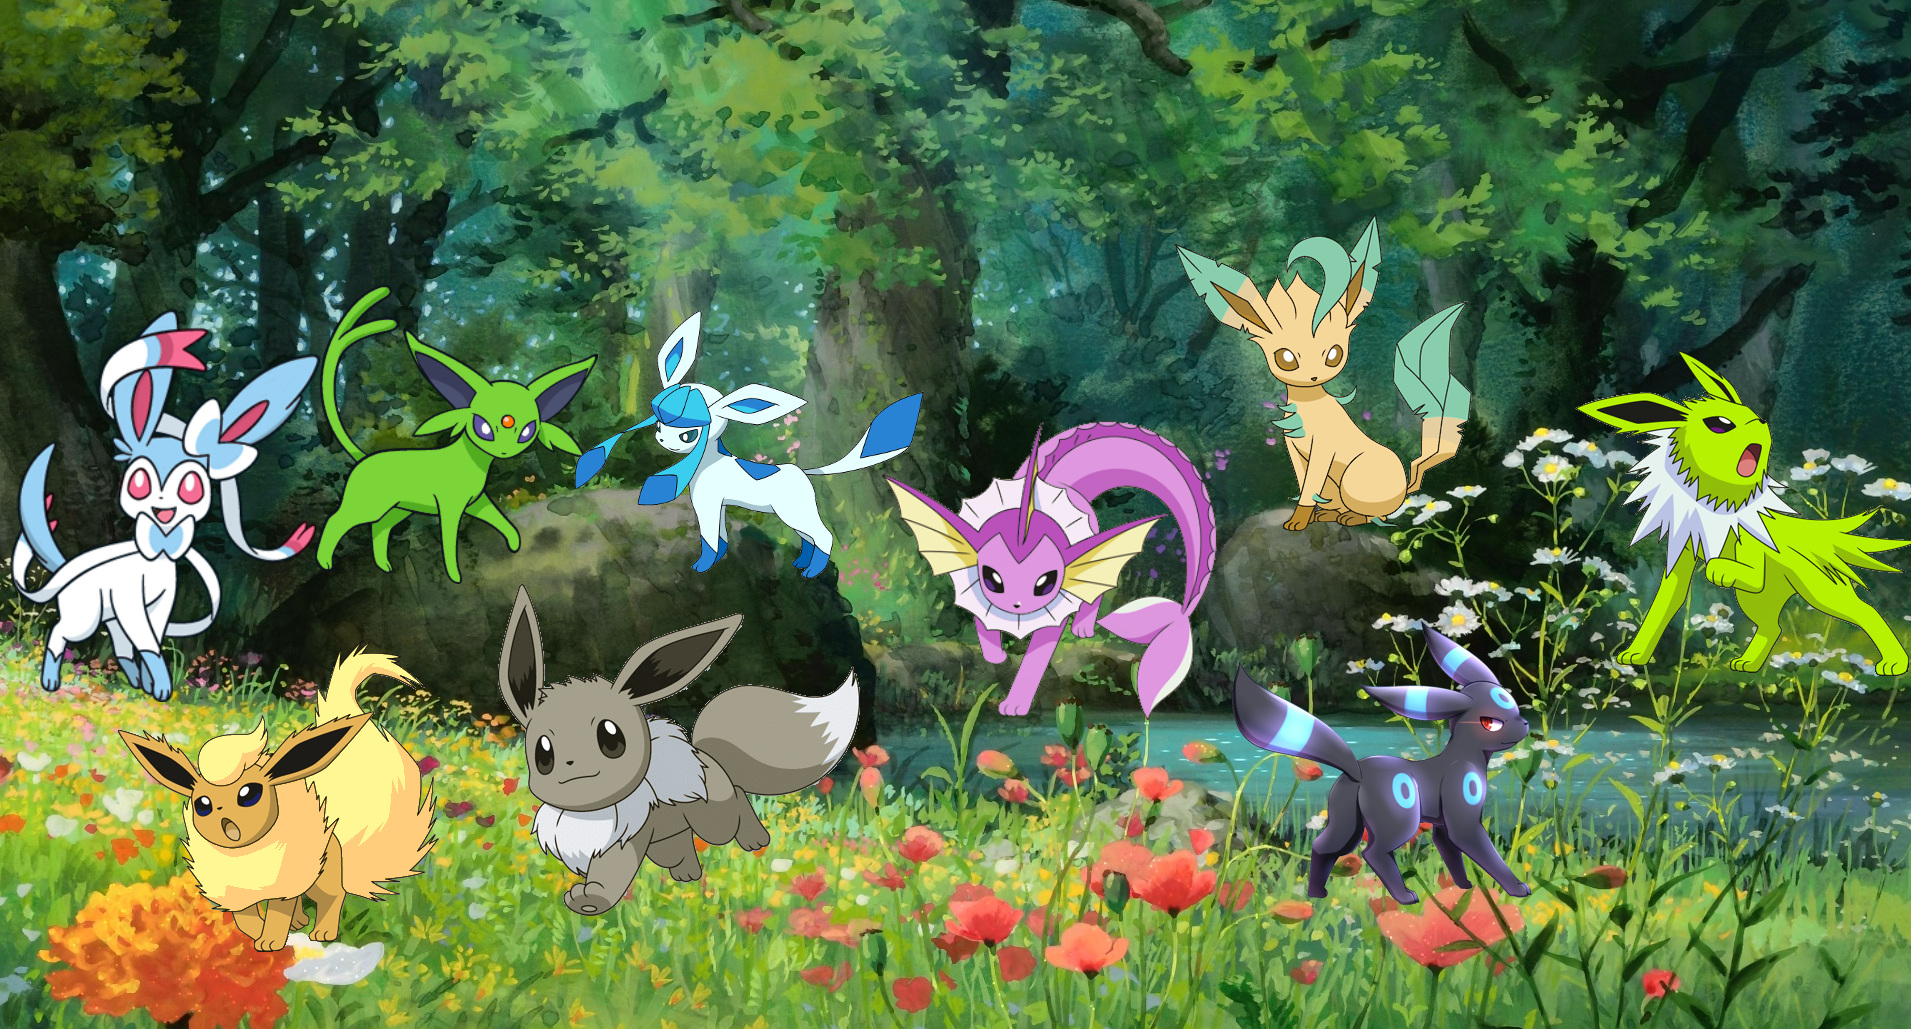 Photo of Pokemon Go Community Day August Shiny Eevee Confirmed, Eeveelutions will know Last Resort Move